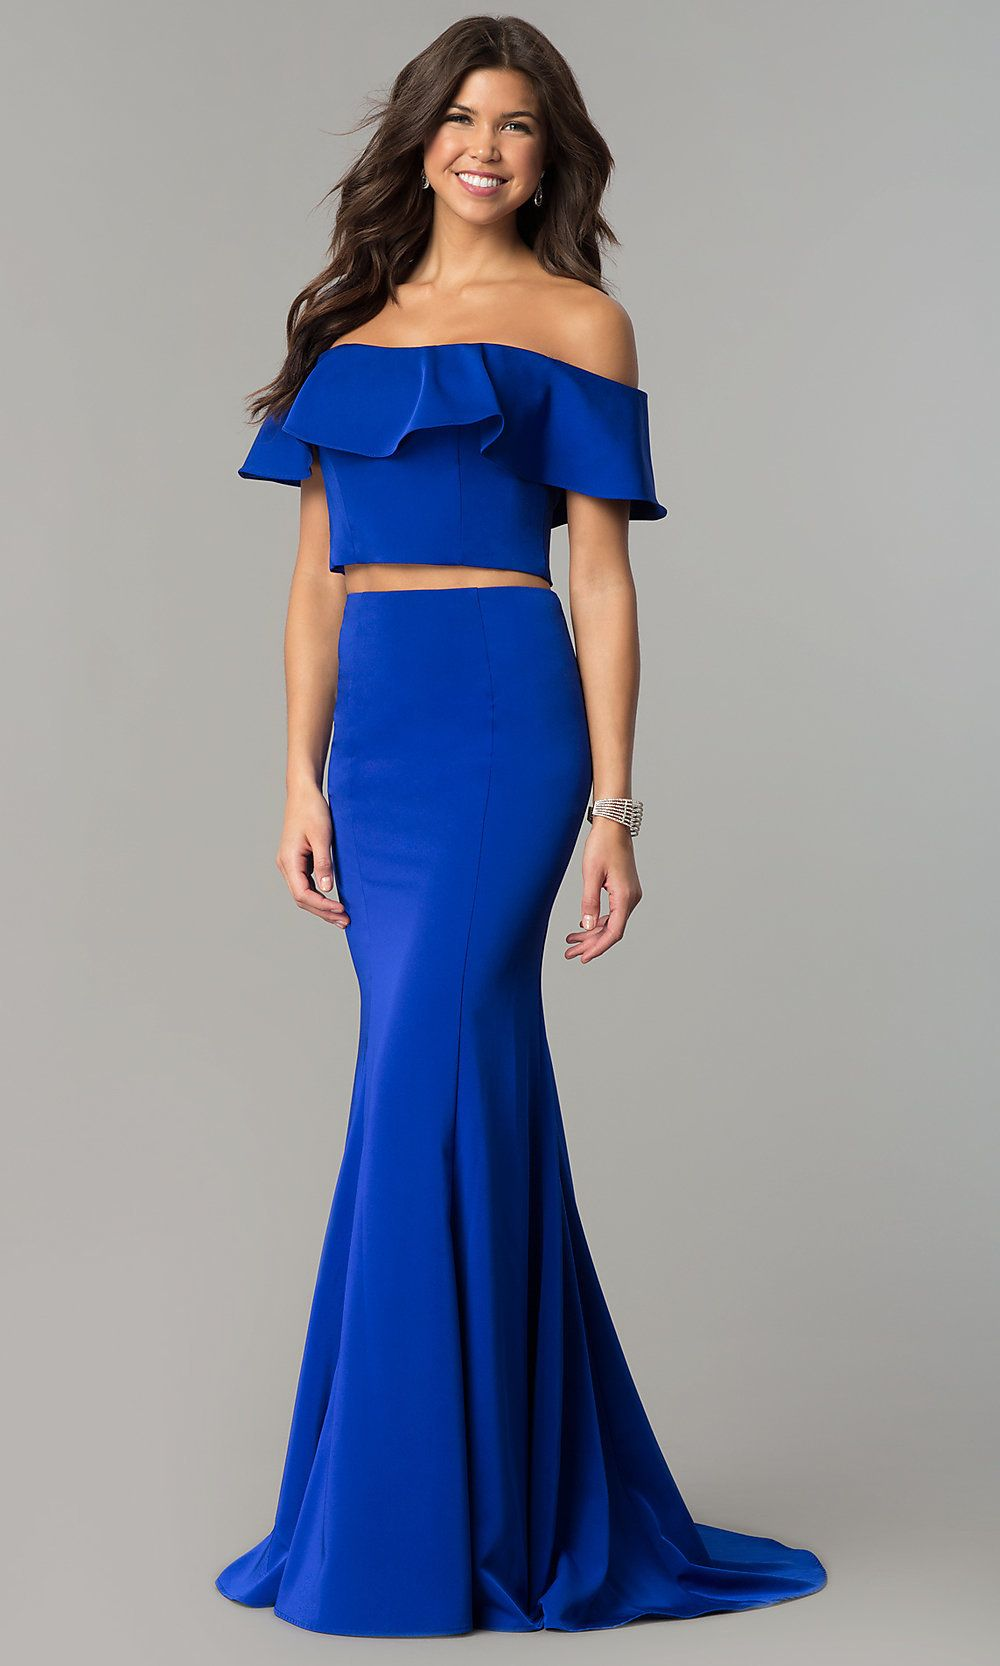 Cut-Out Open-Back Long Off-the-Shoulder Prom Dress